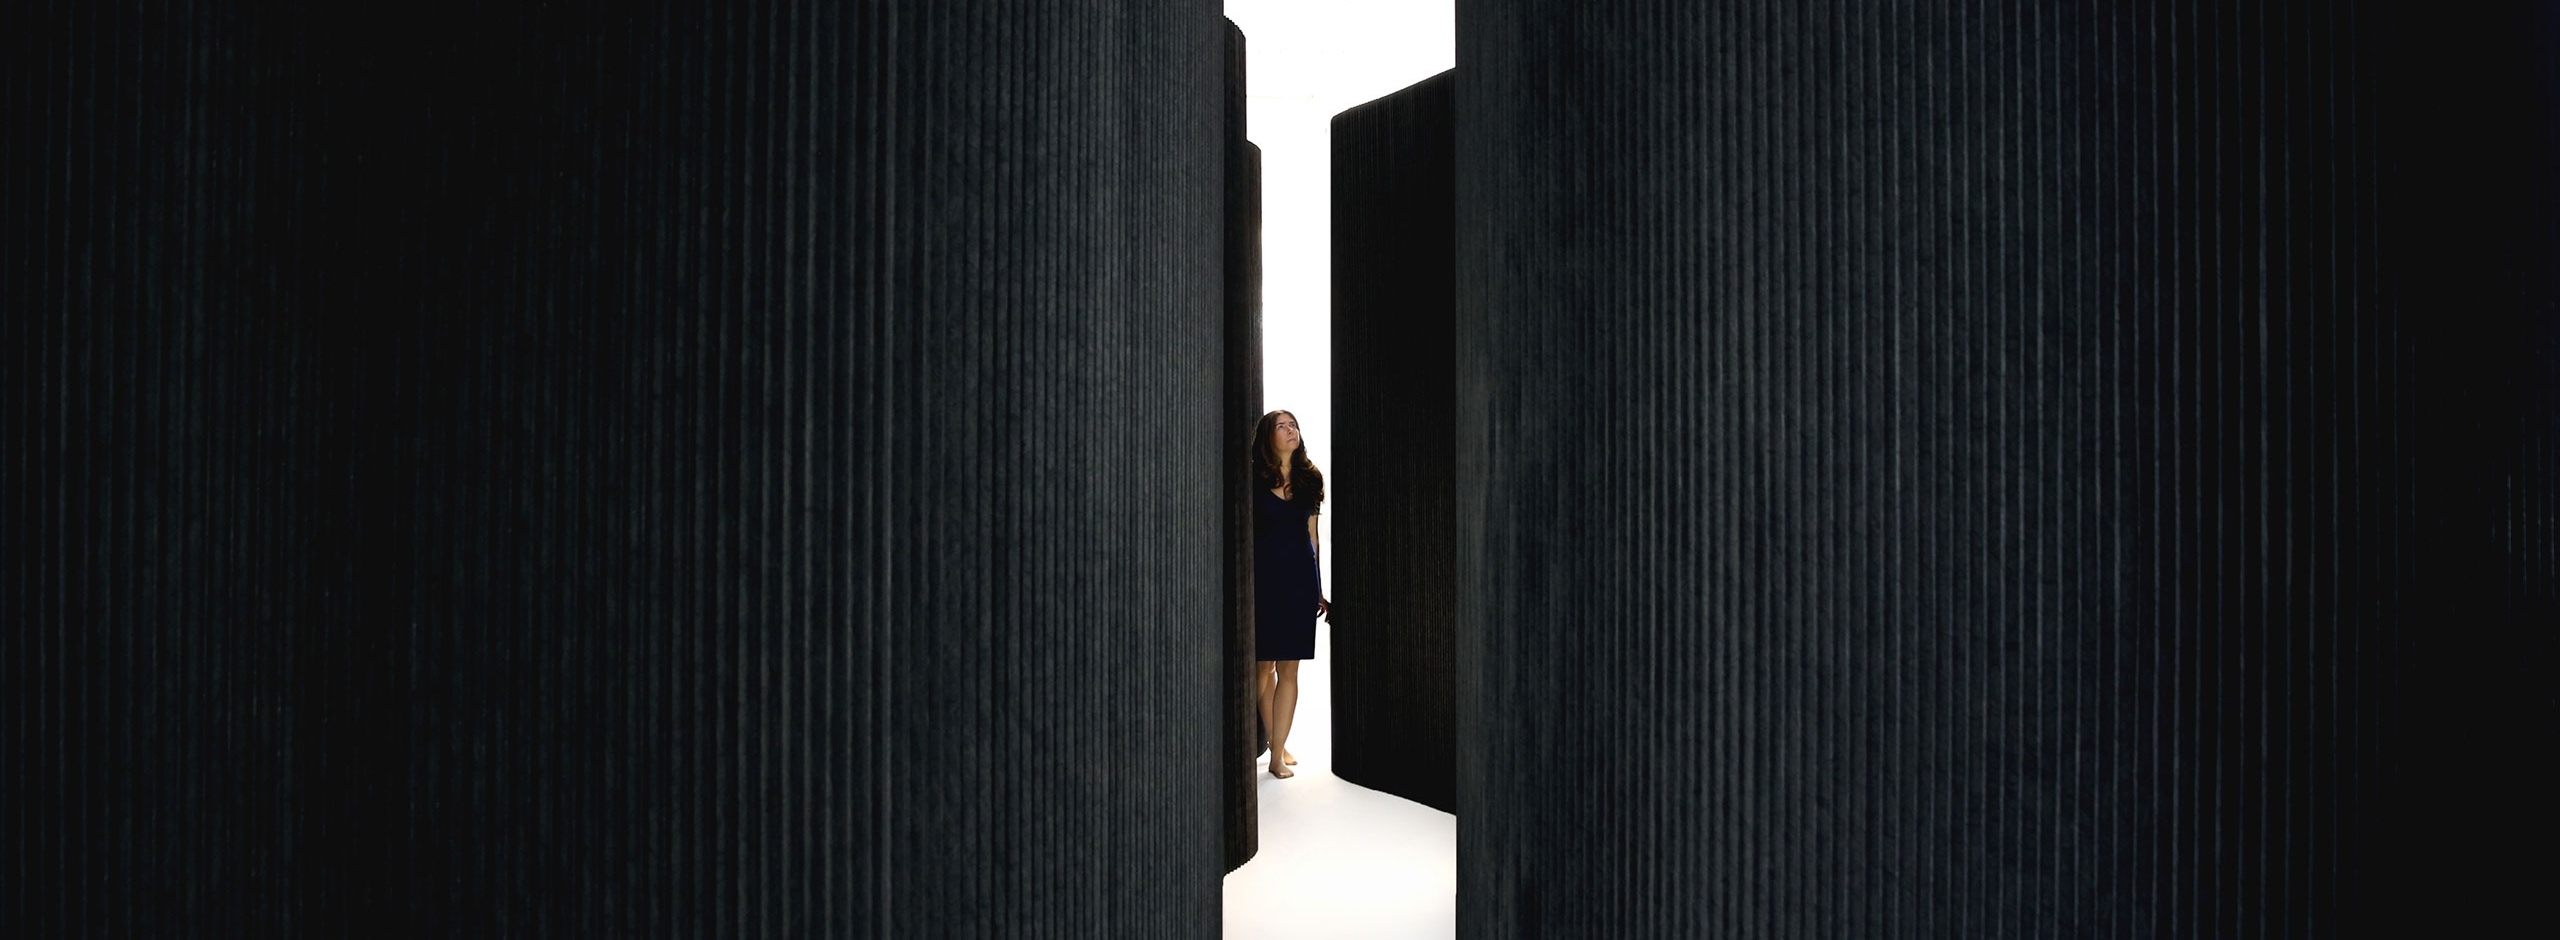 woman wanders through black textile softwall